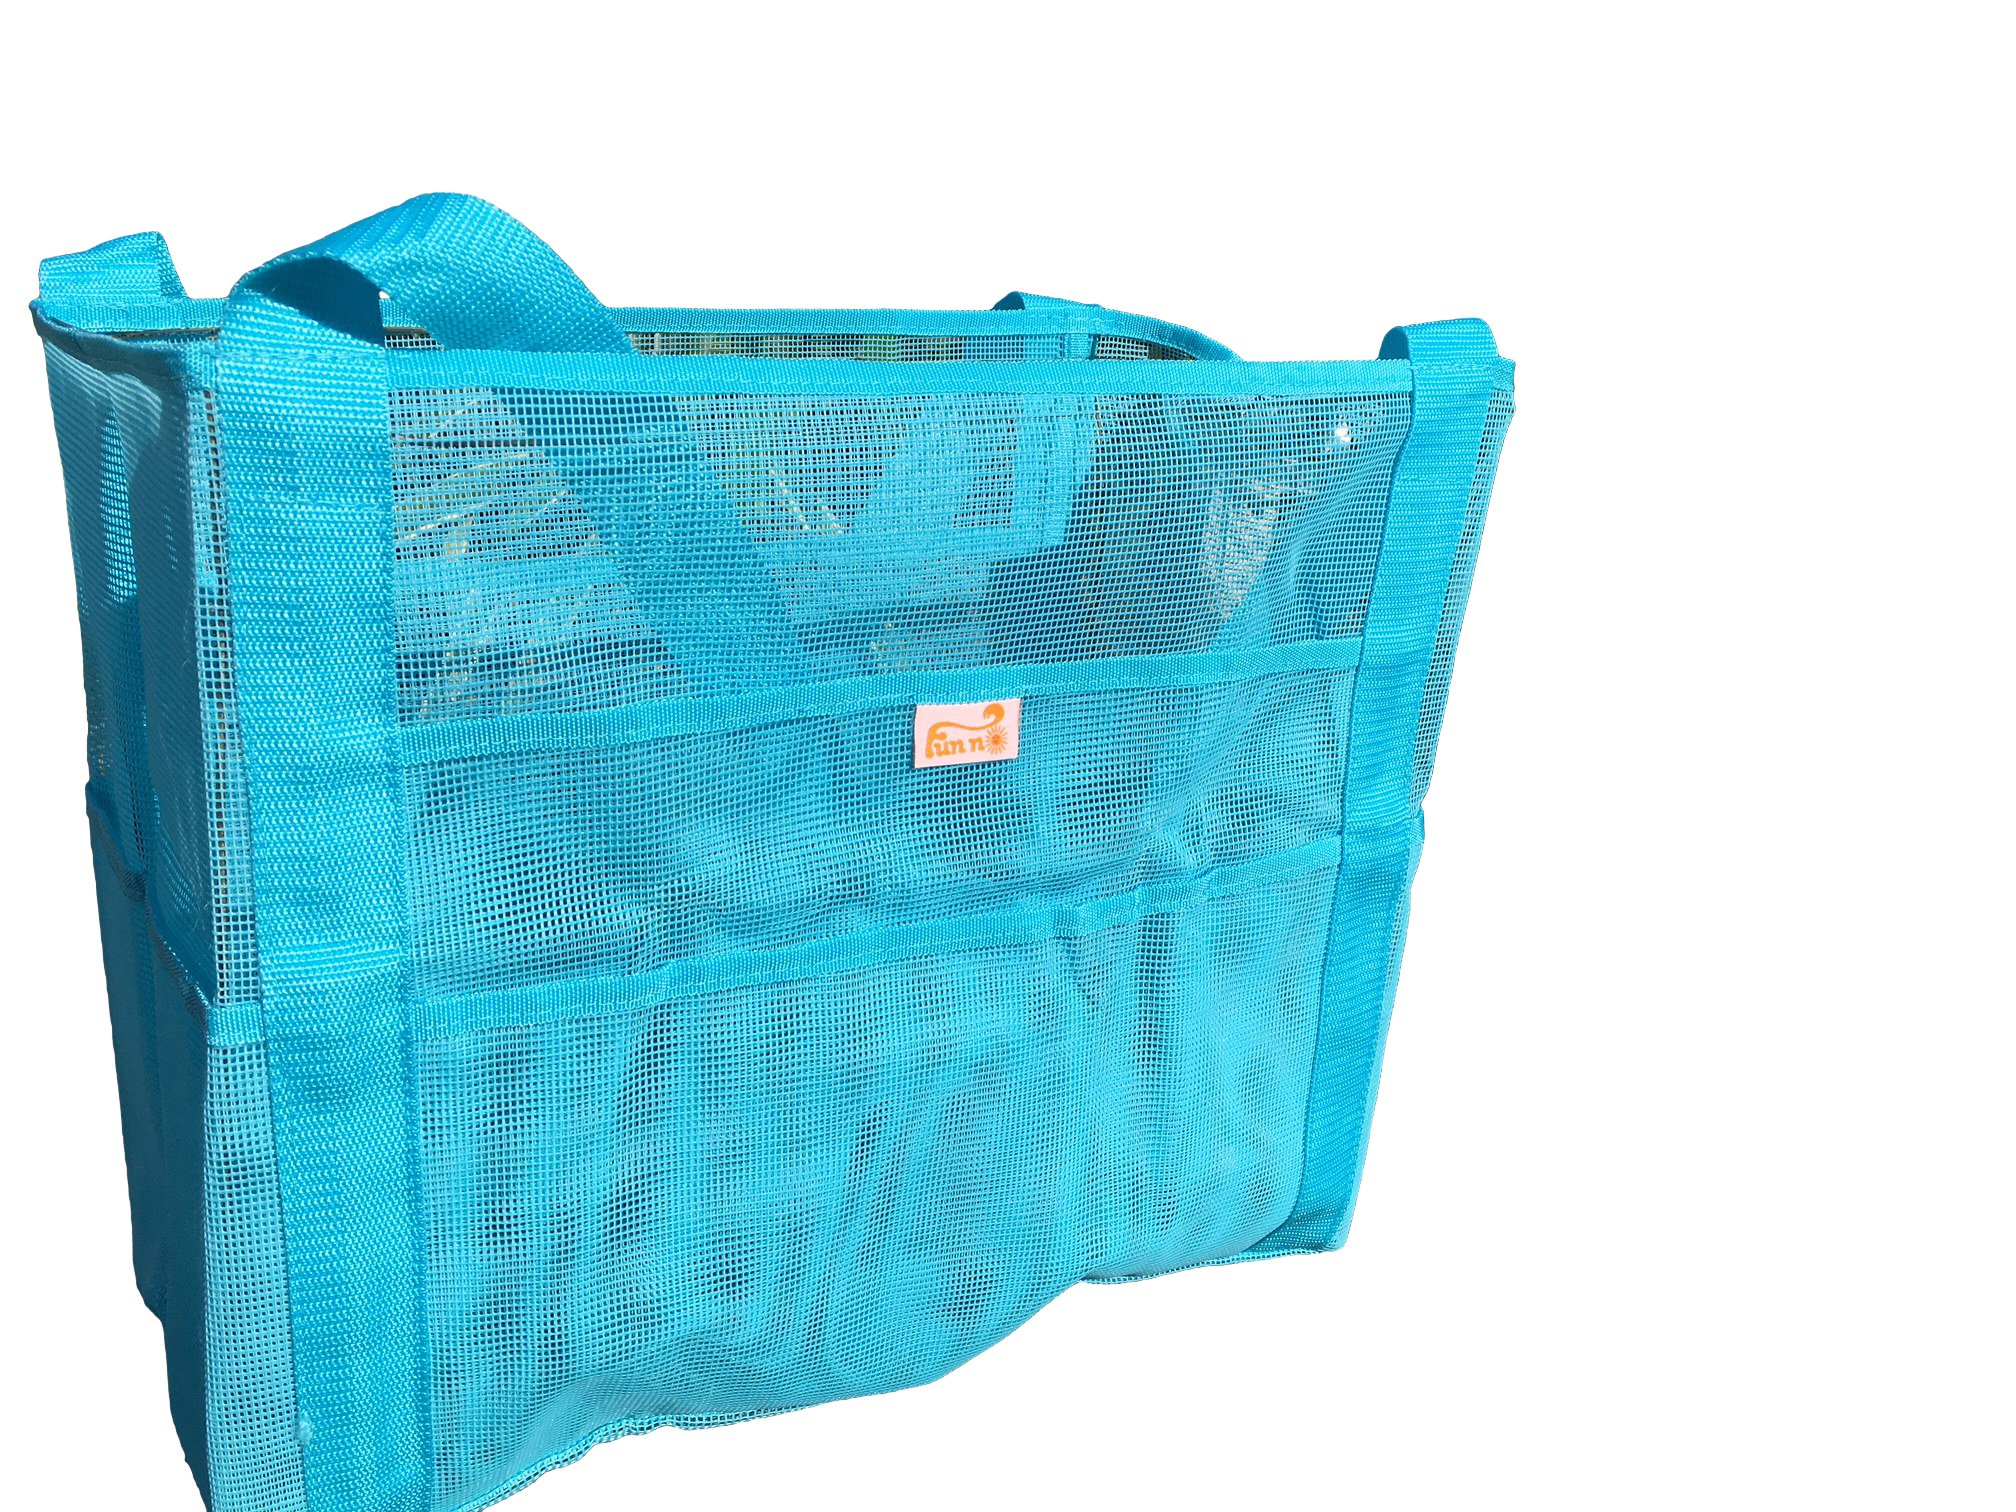 MESH BEACH BAG ~ EXTRA LARGE CAPACITY~OVERSIZE POCKETS~ LIGHTWEIGHT MARKET & GROCERY, BEACH TOY TOTE